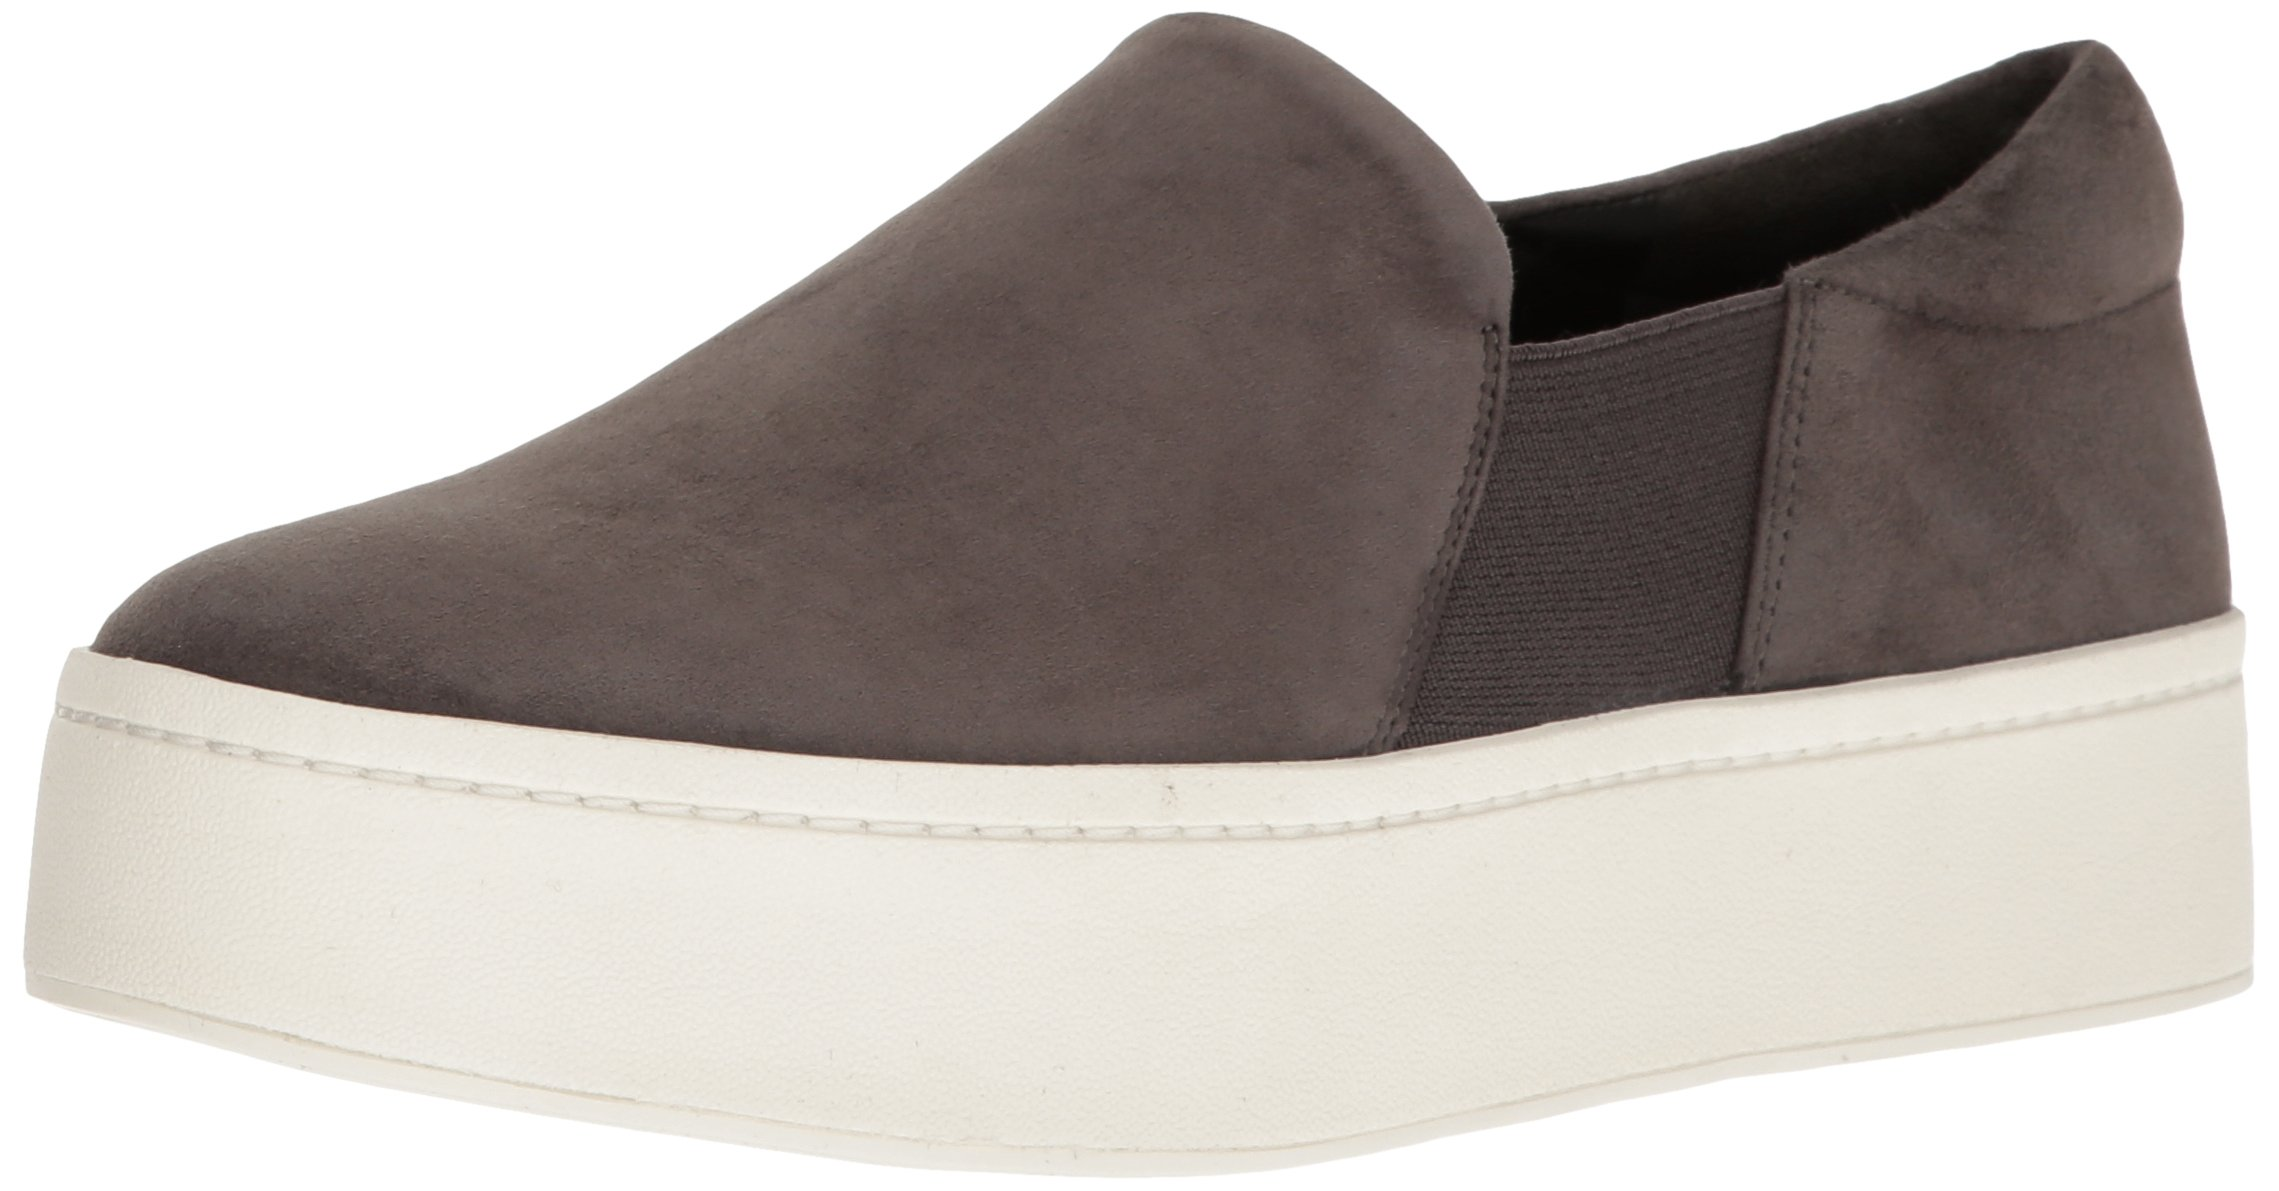 Vince Women's Warren Sneaker, Steel, 7 Medium US by Vince